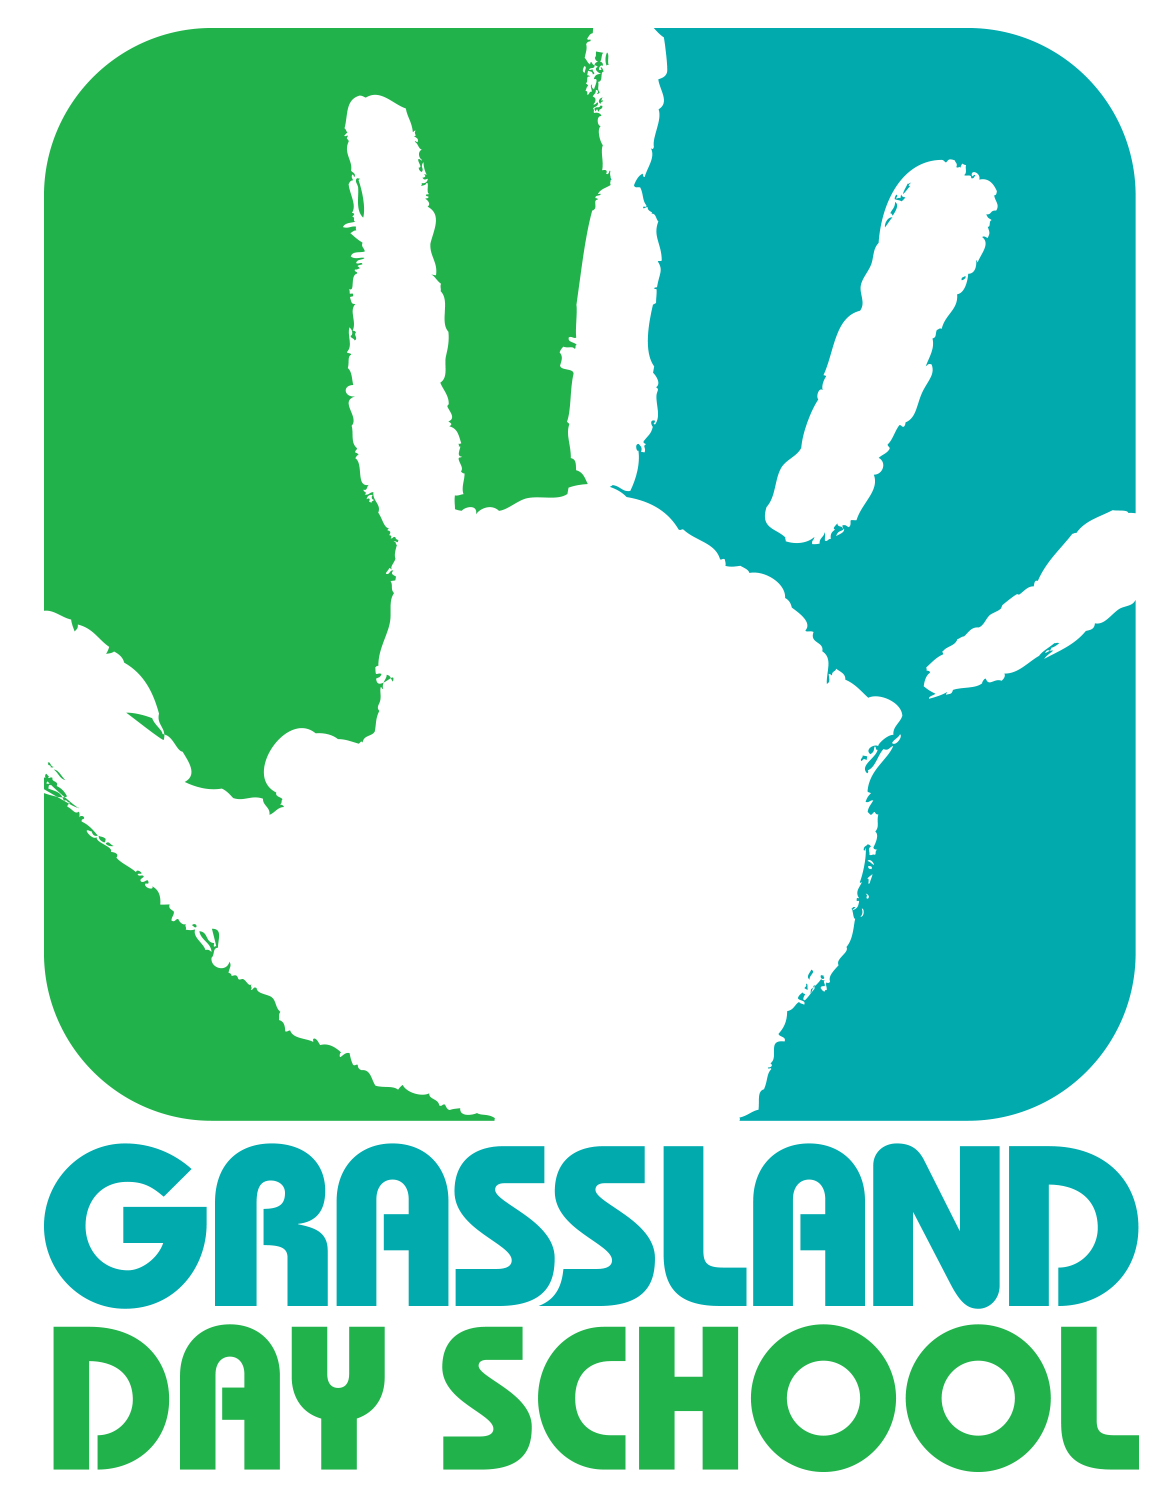 Grassland Day School Logo